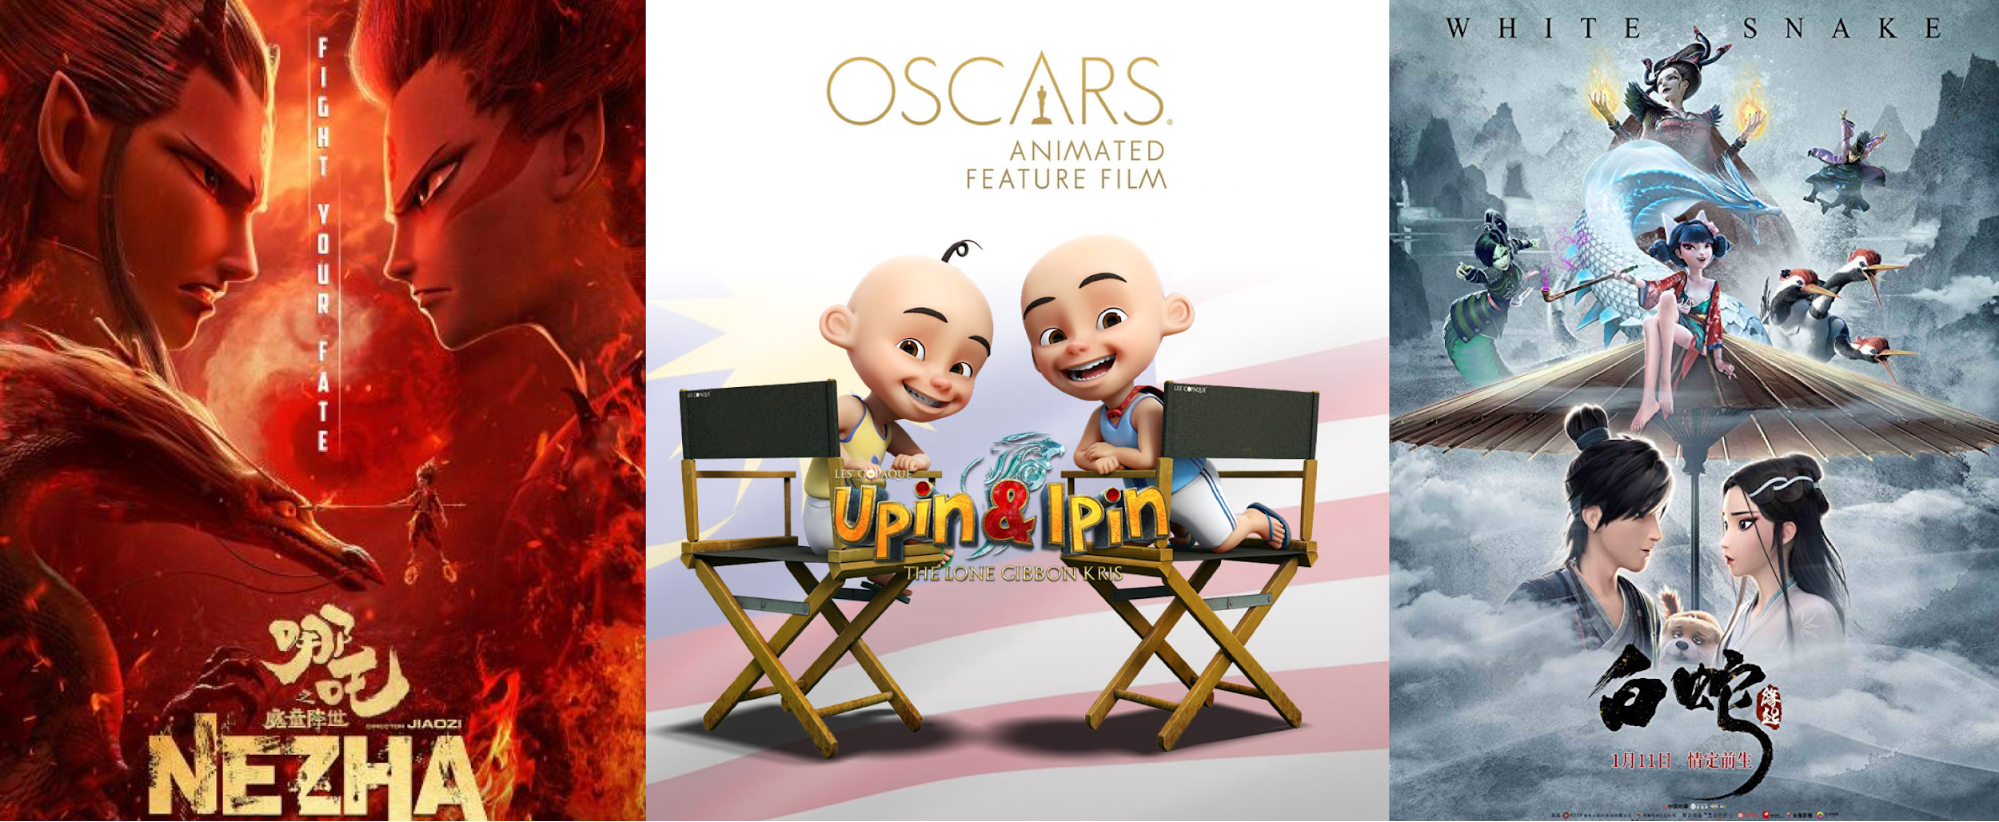 'Ne Zha' and 'Upin & Ipin' Officially in Running for 2020 Oscar Nomination!